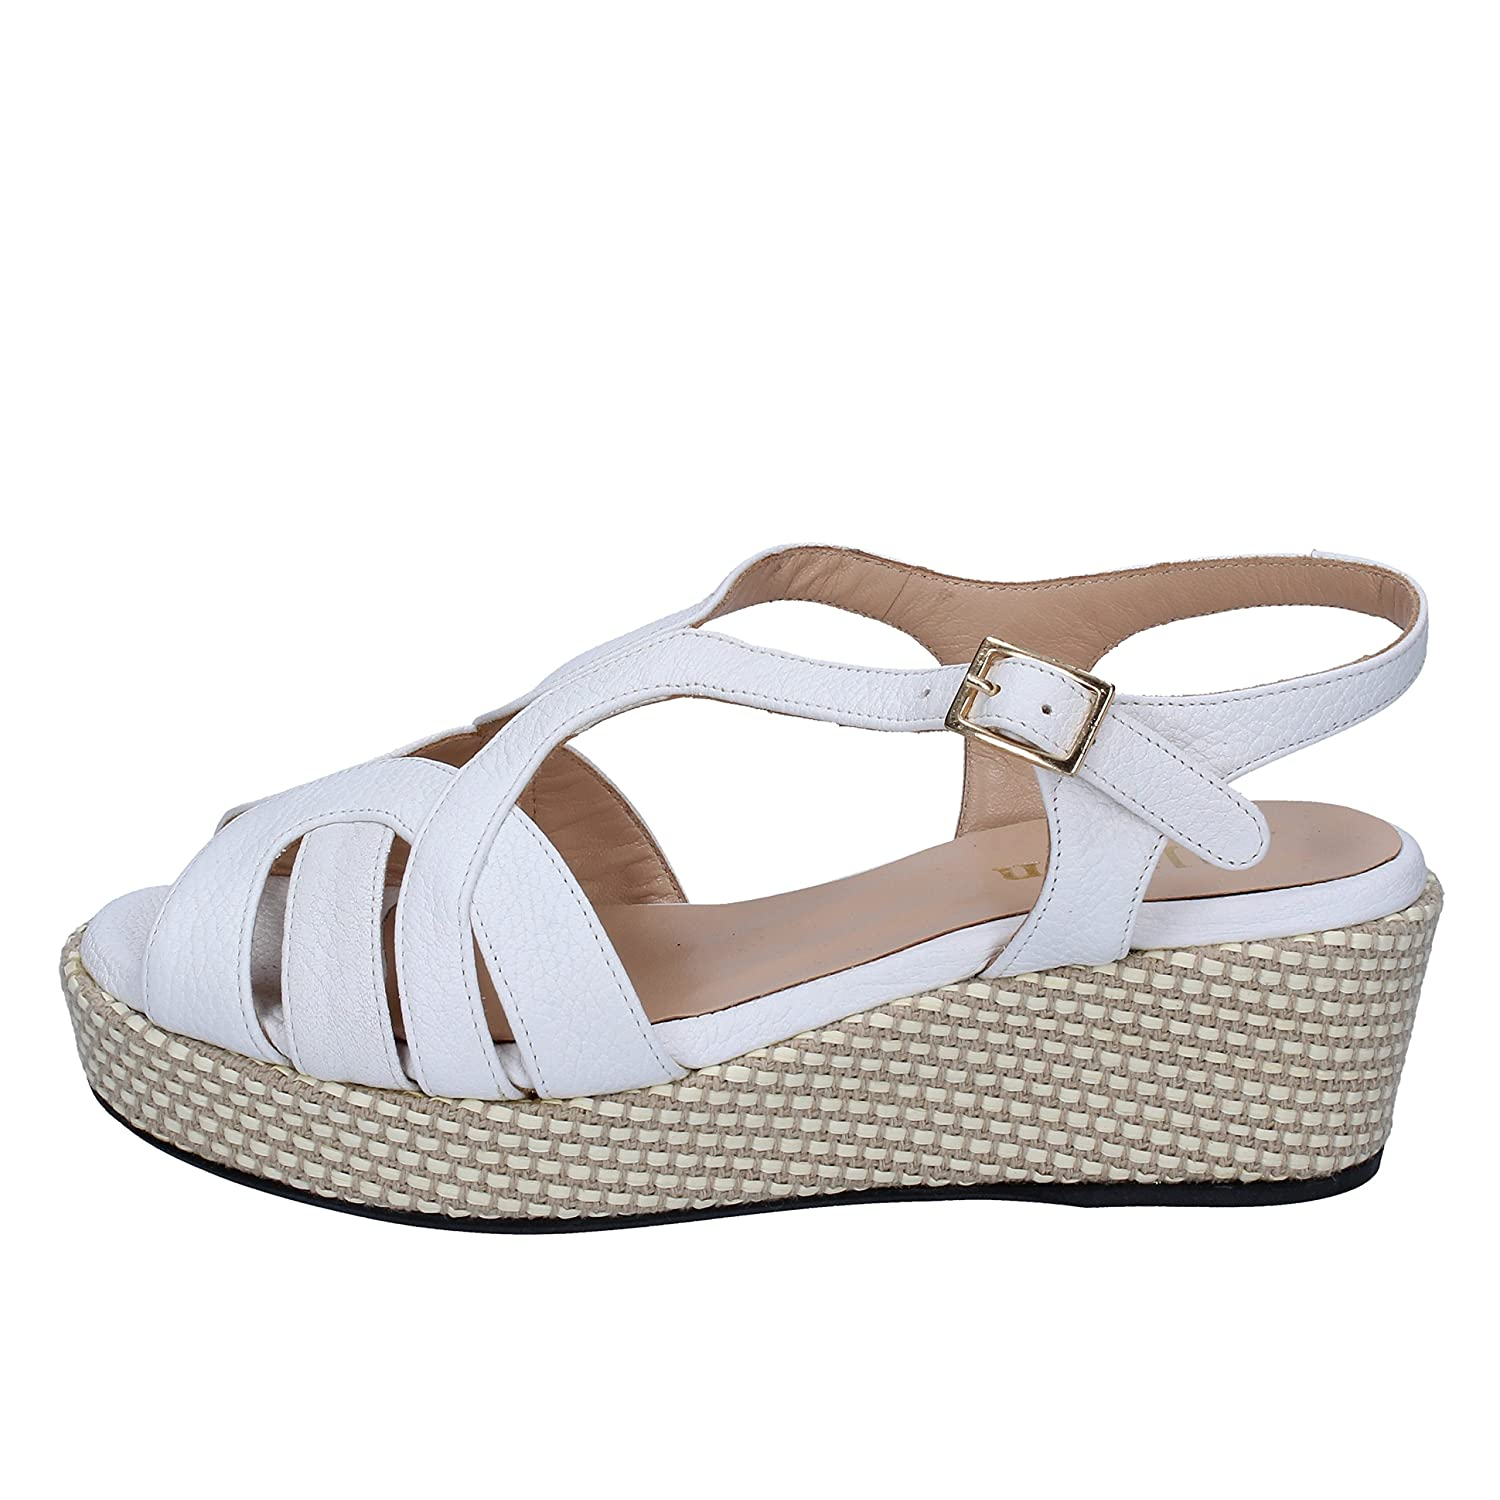 - ALLISON Sandals Womens Leather White